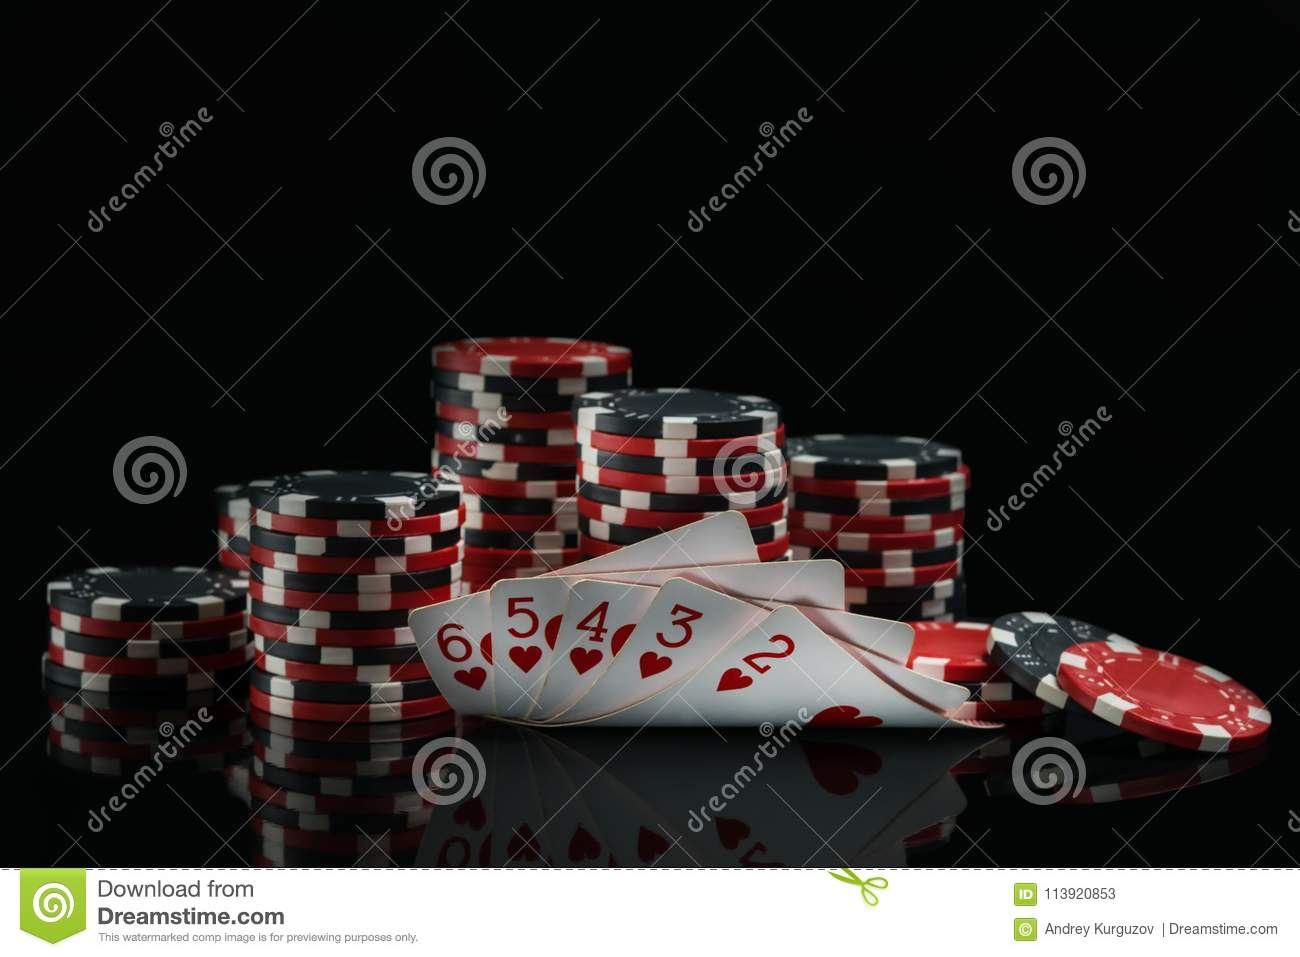 Cards with a win and poker chips in the dark on a black background